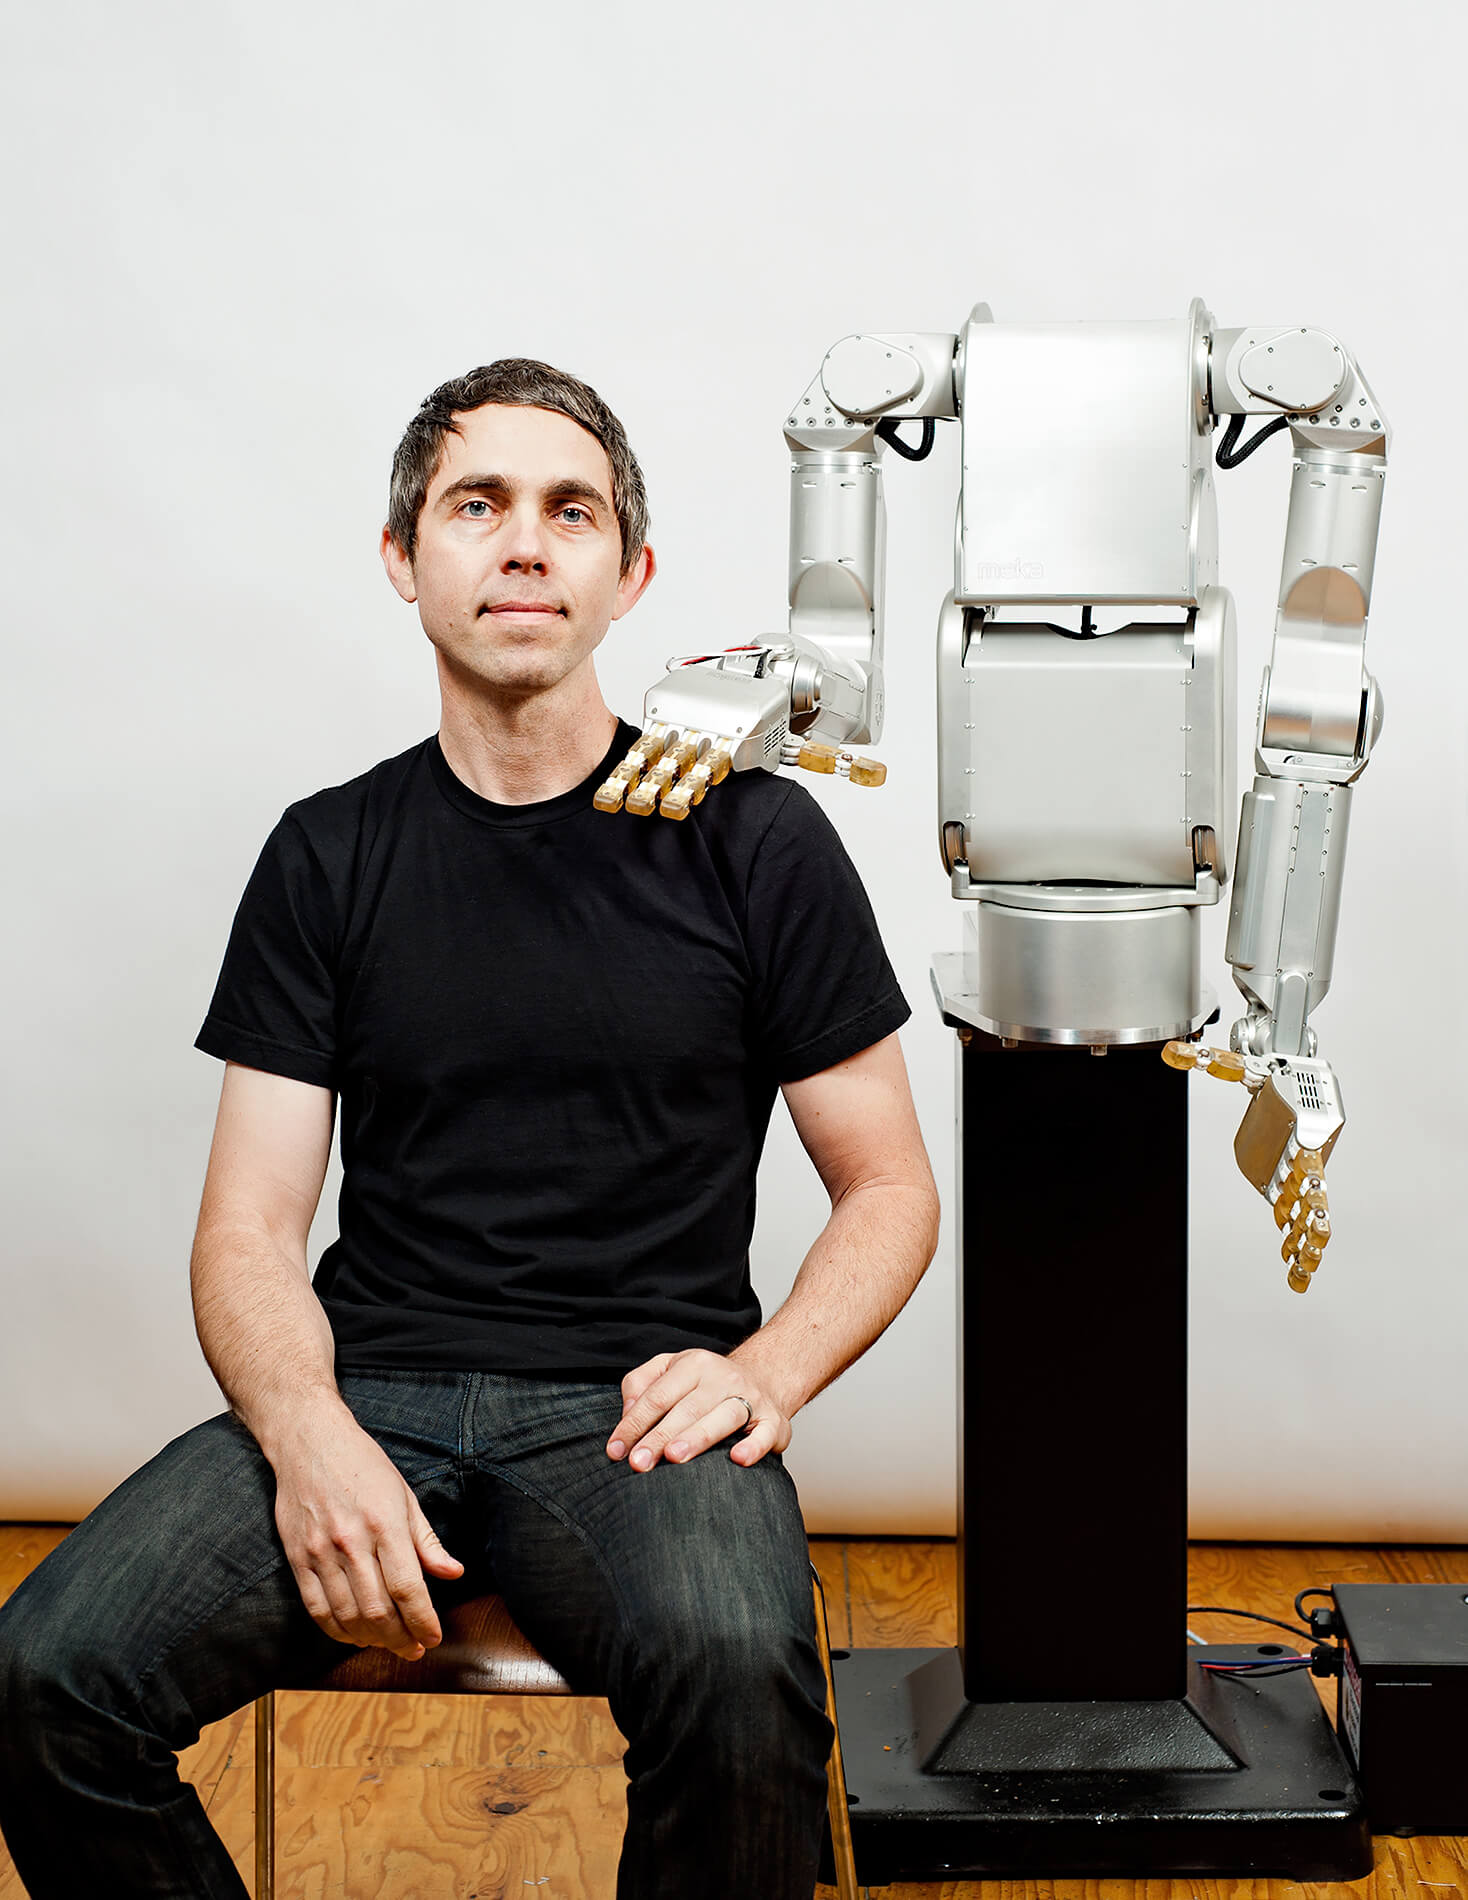 Robot touching human